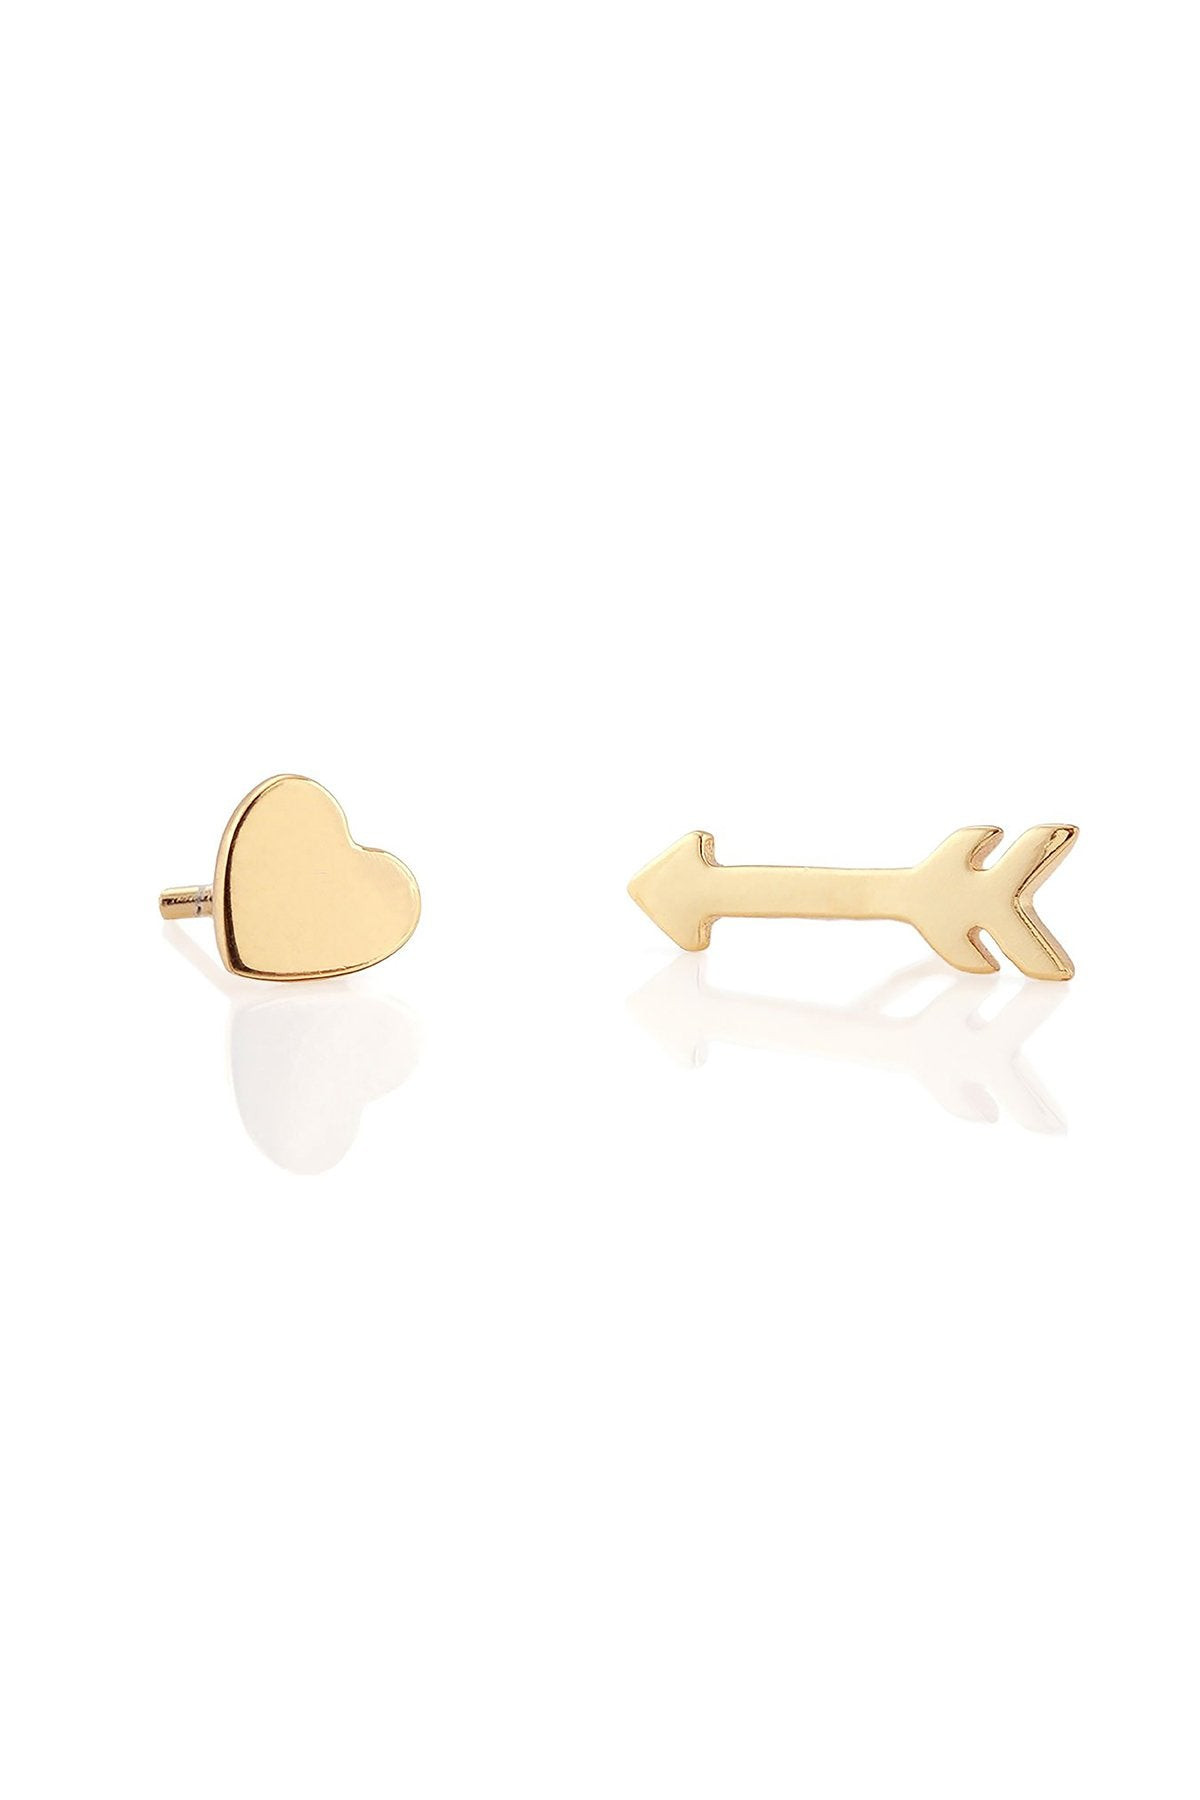 Kris Nations Heart and Arrow Stud Earrings in 18K Gold Vermeil